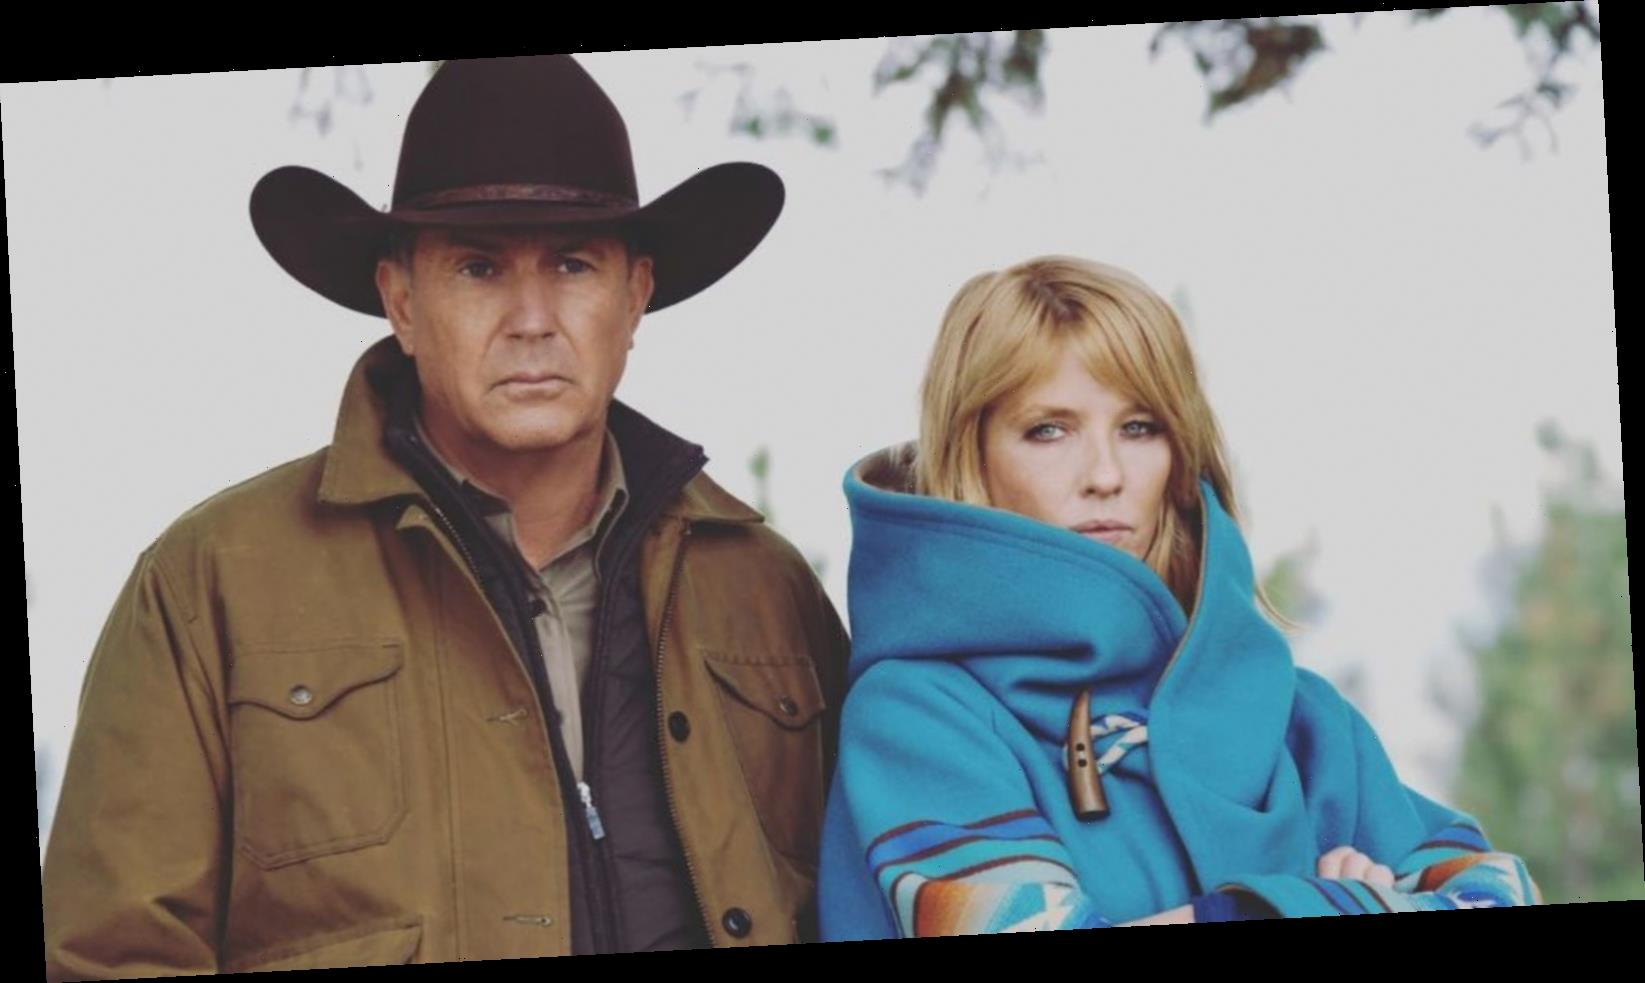 The Real Reason You Recognize Yellowstone's Beth Dutton